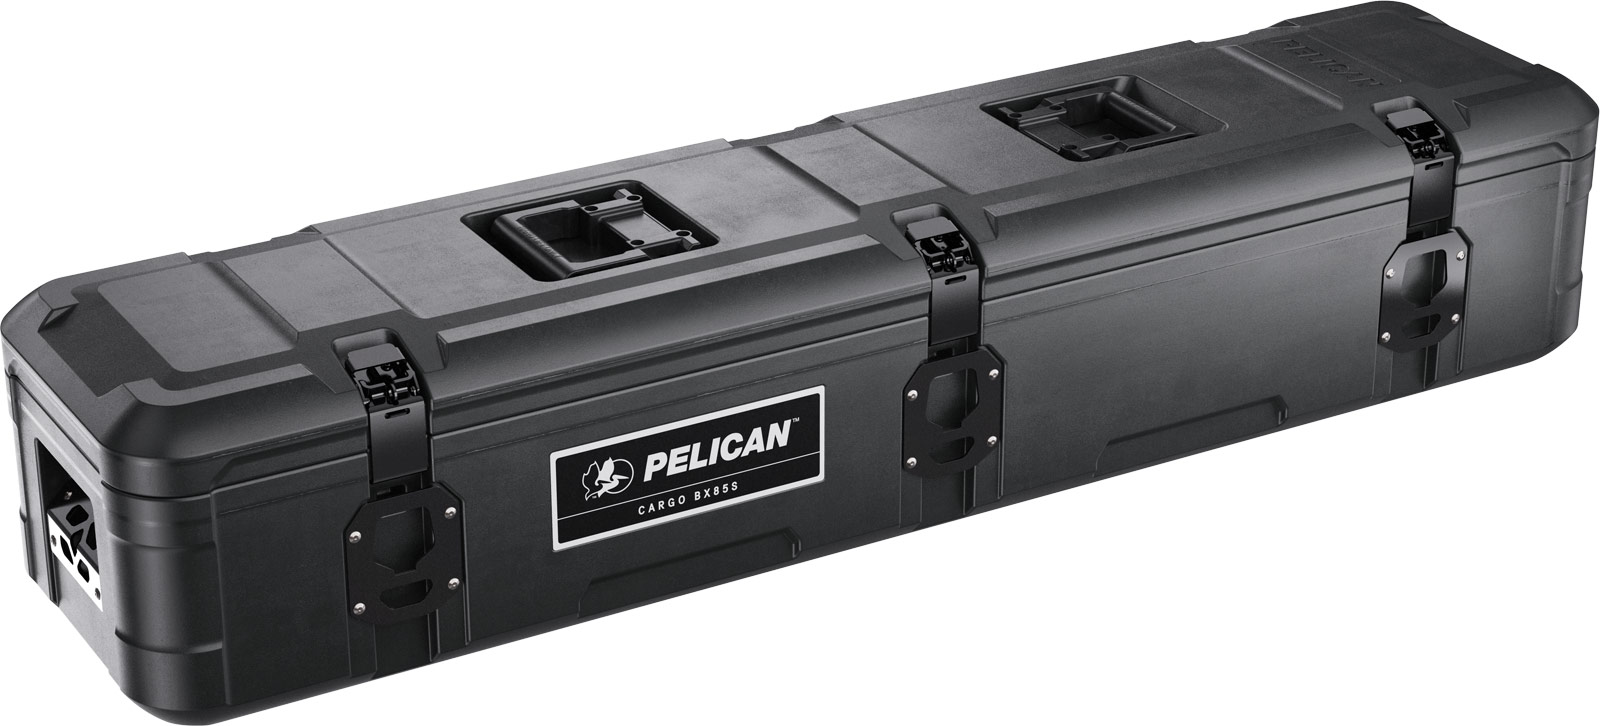 pelican cargo bx85s long trunk case